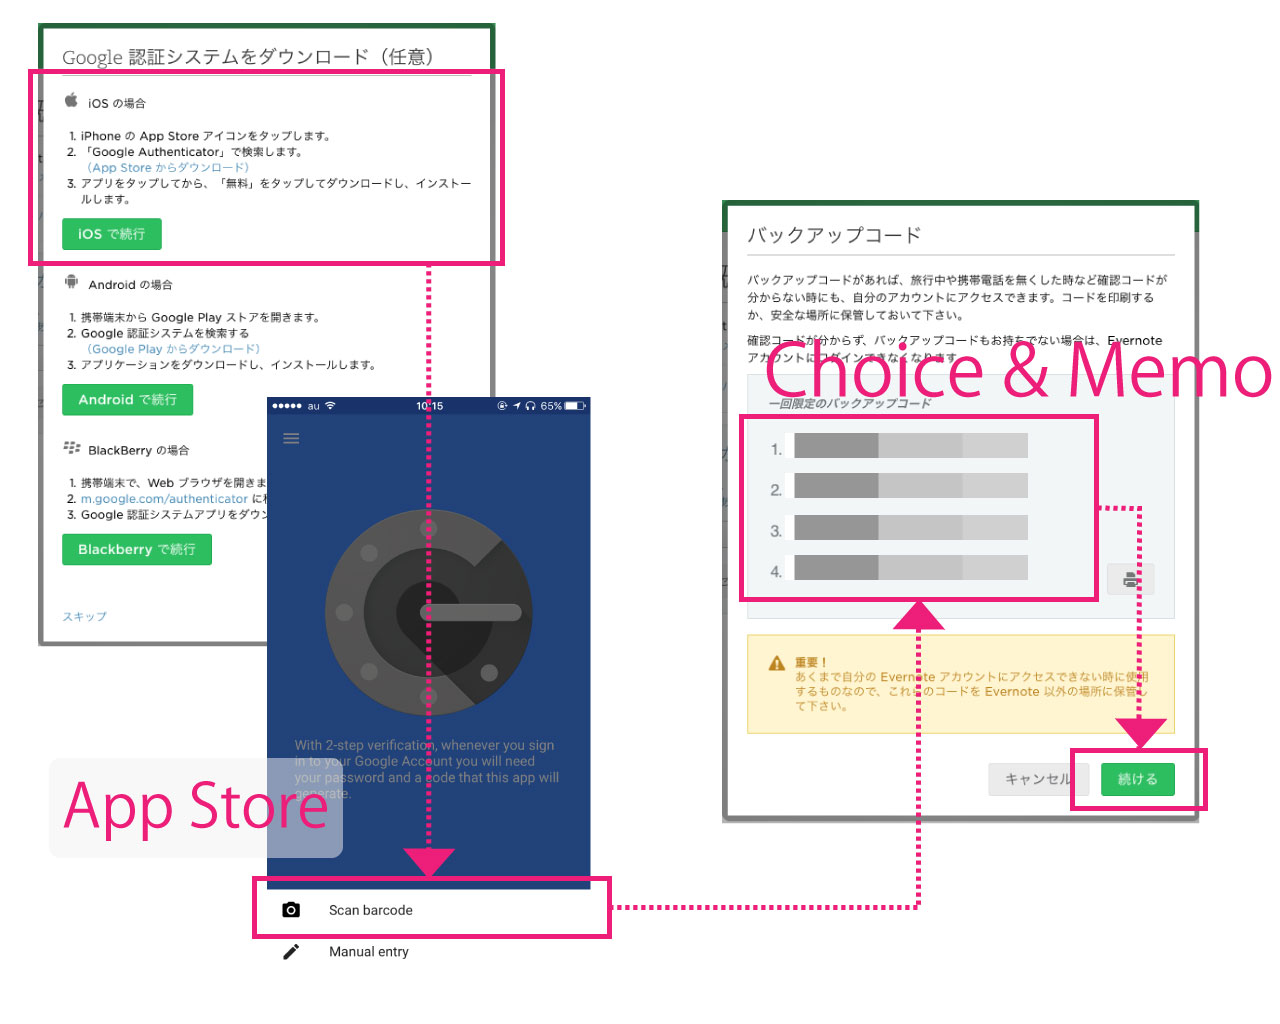 evernote-2step-authentication-5